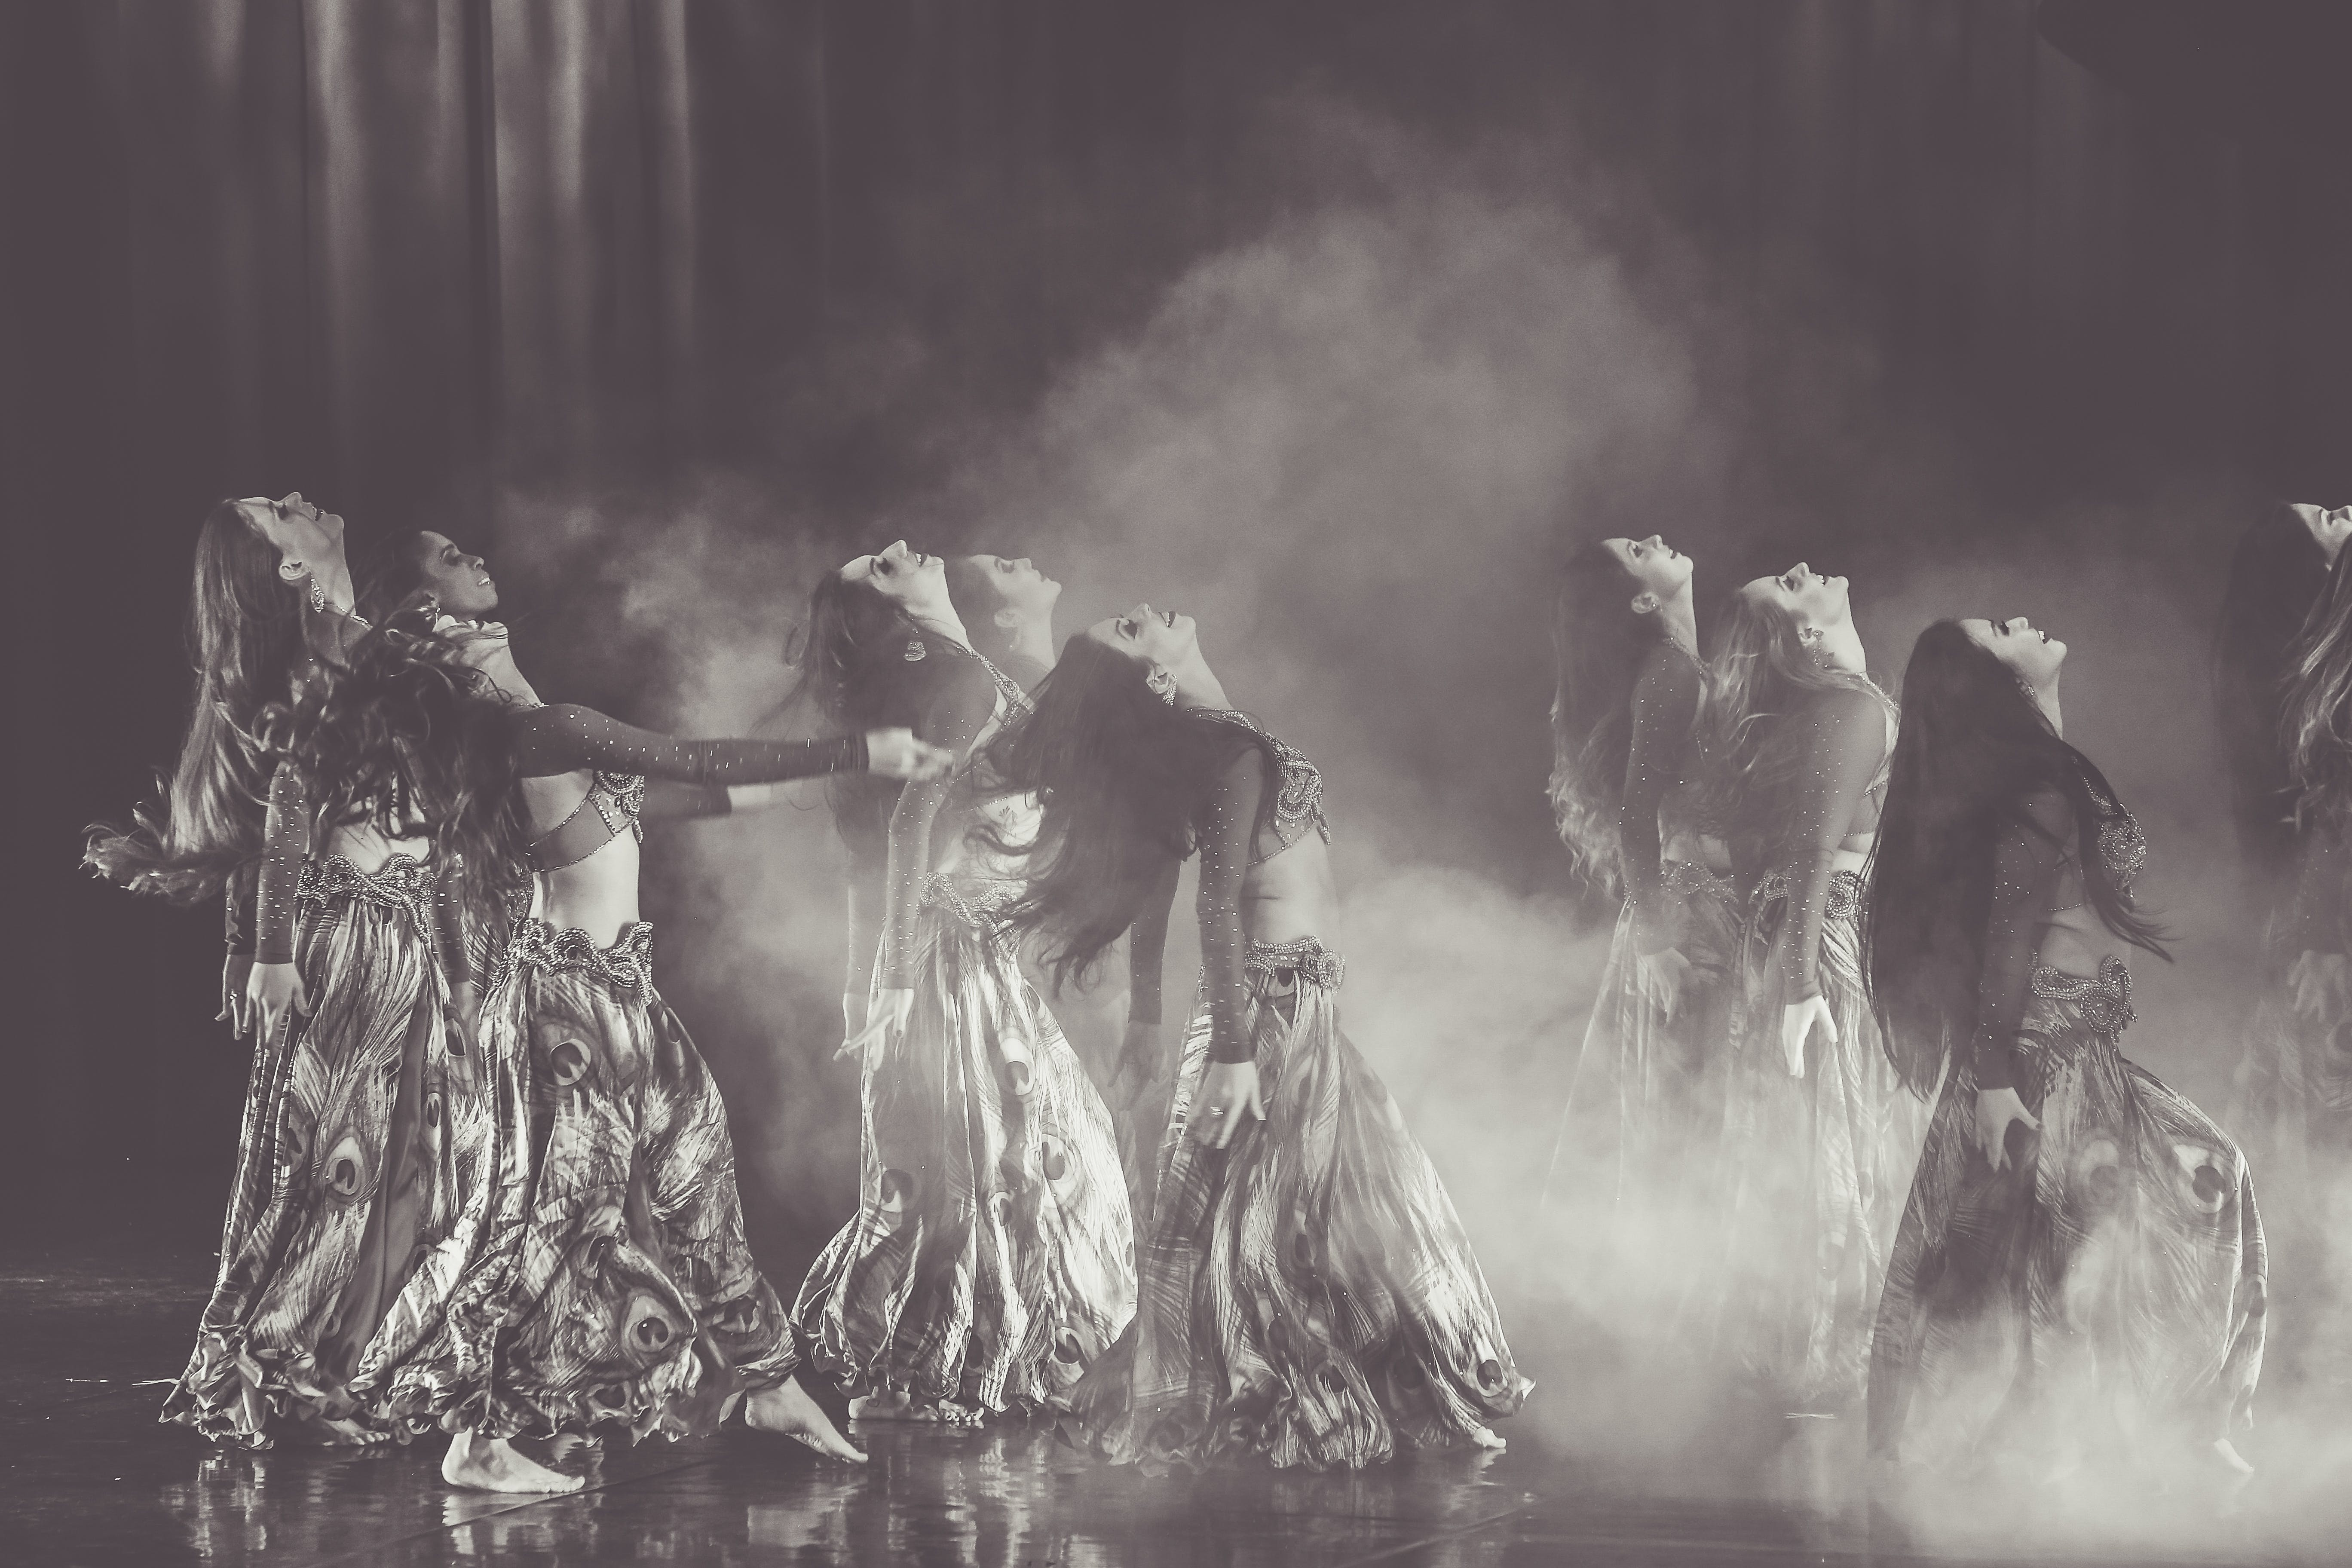 Monochrome Photography of Women Performing On Stage